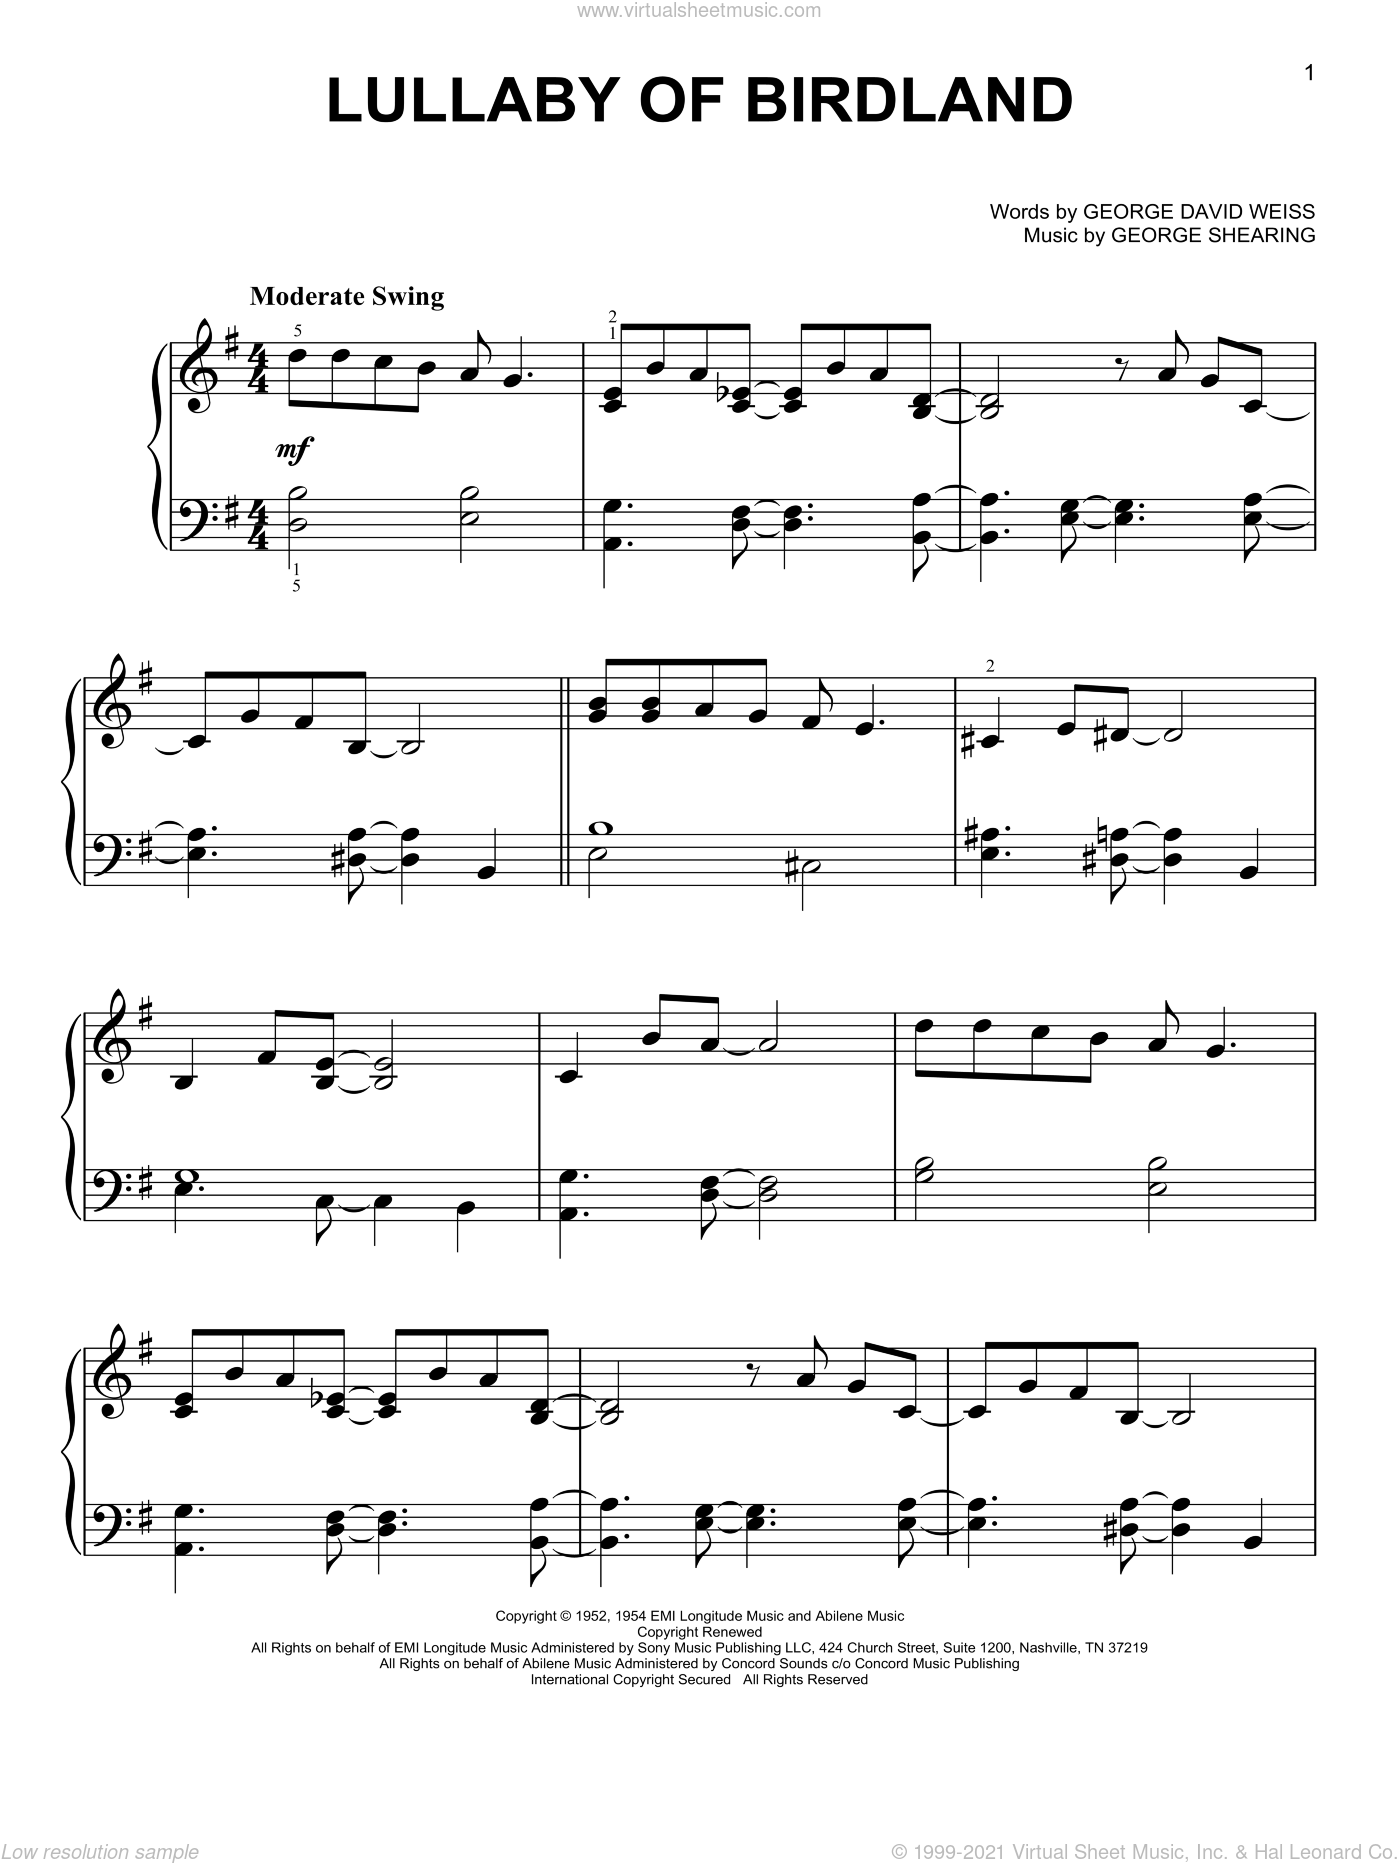 Lullaby Of Birdland sheet music for piano solo by George David Weiss and George Shearing, easy skill level